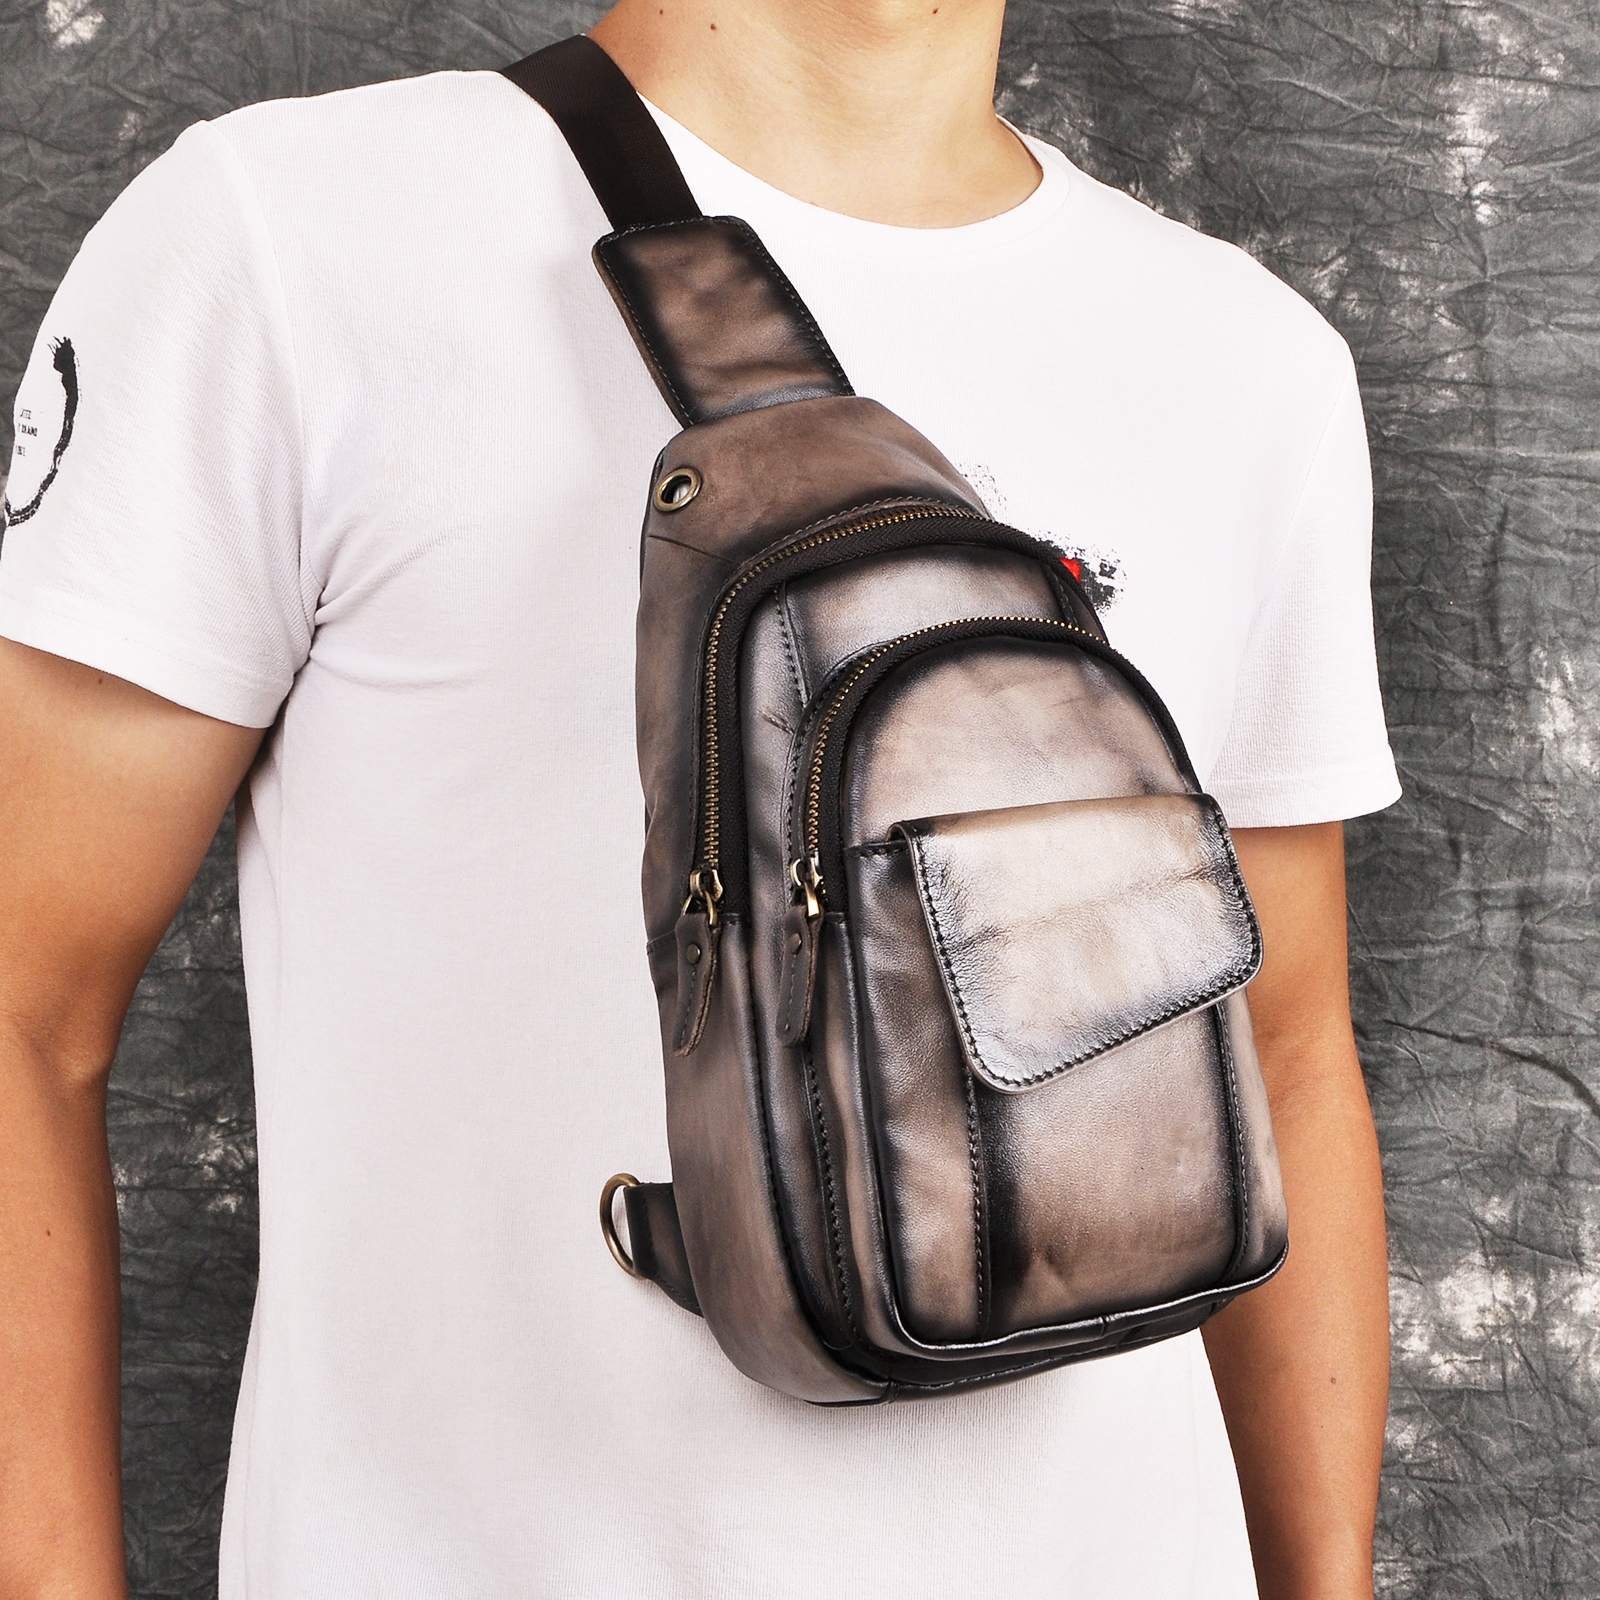 Men Quality Crazy Horse Leather Casual Fashion Crossbody Chest Sling Bag Design Travel One Shoulder Bag Daypack Male 8013-dc